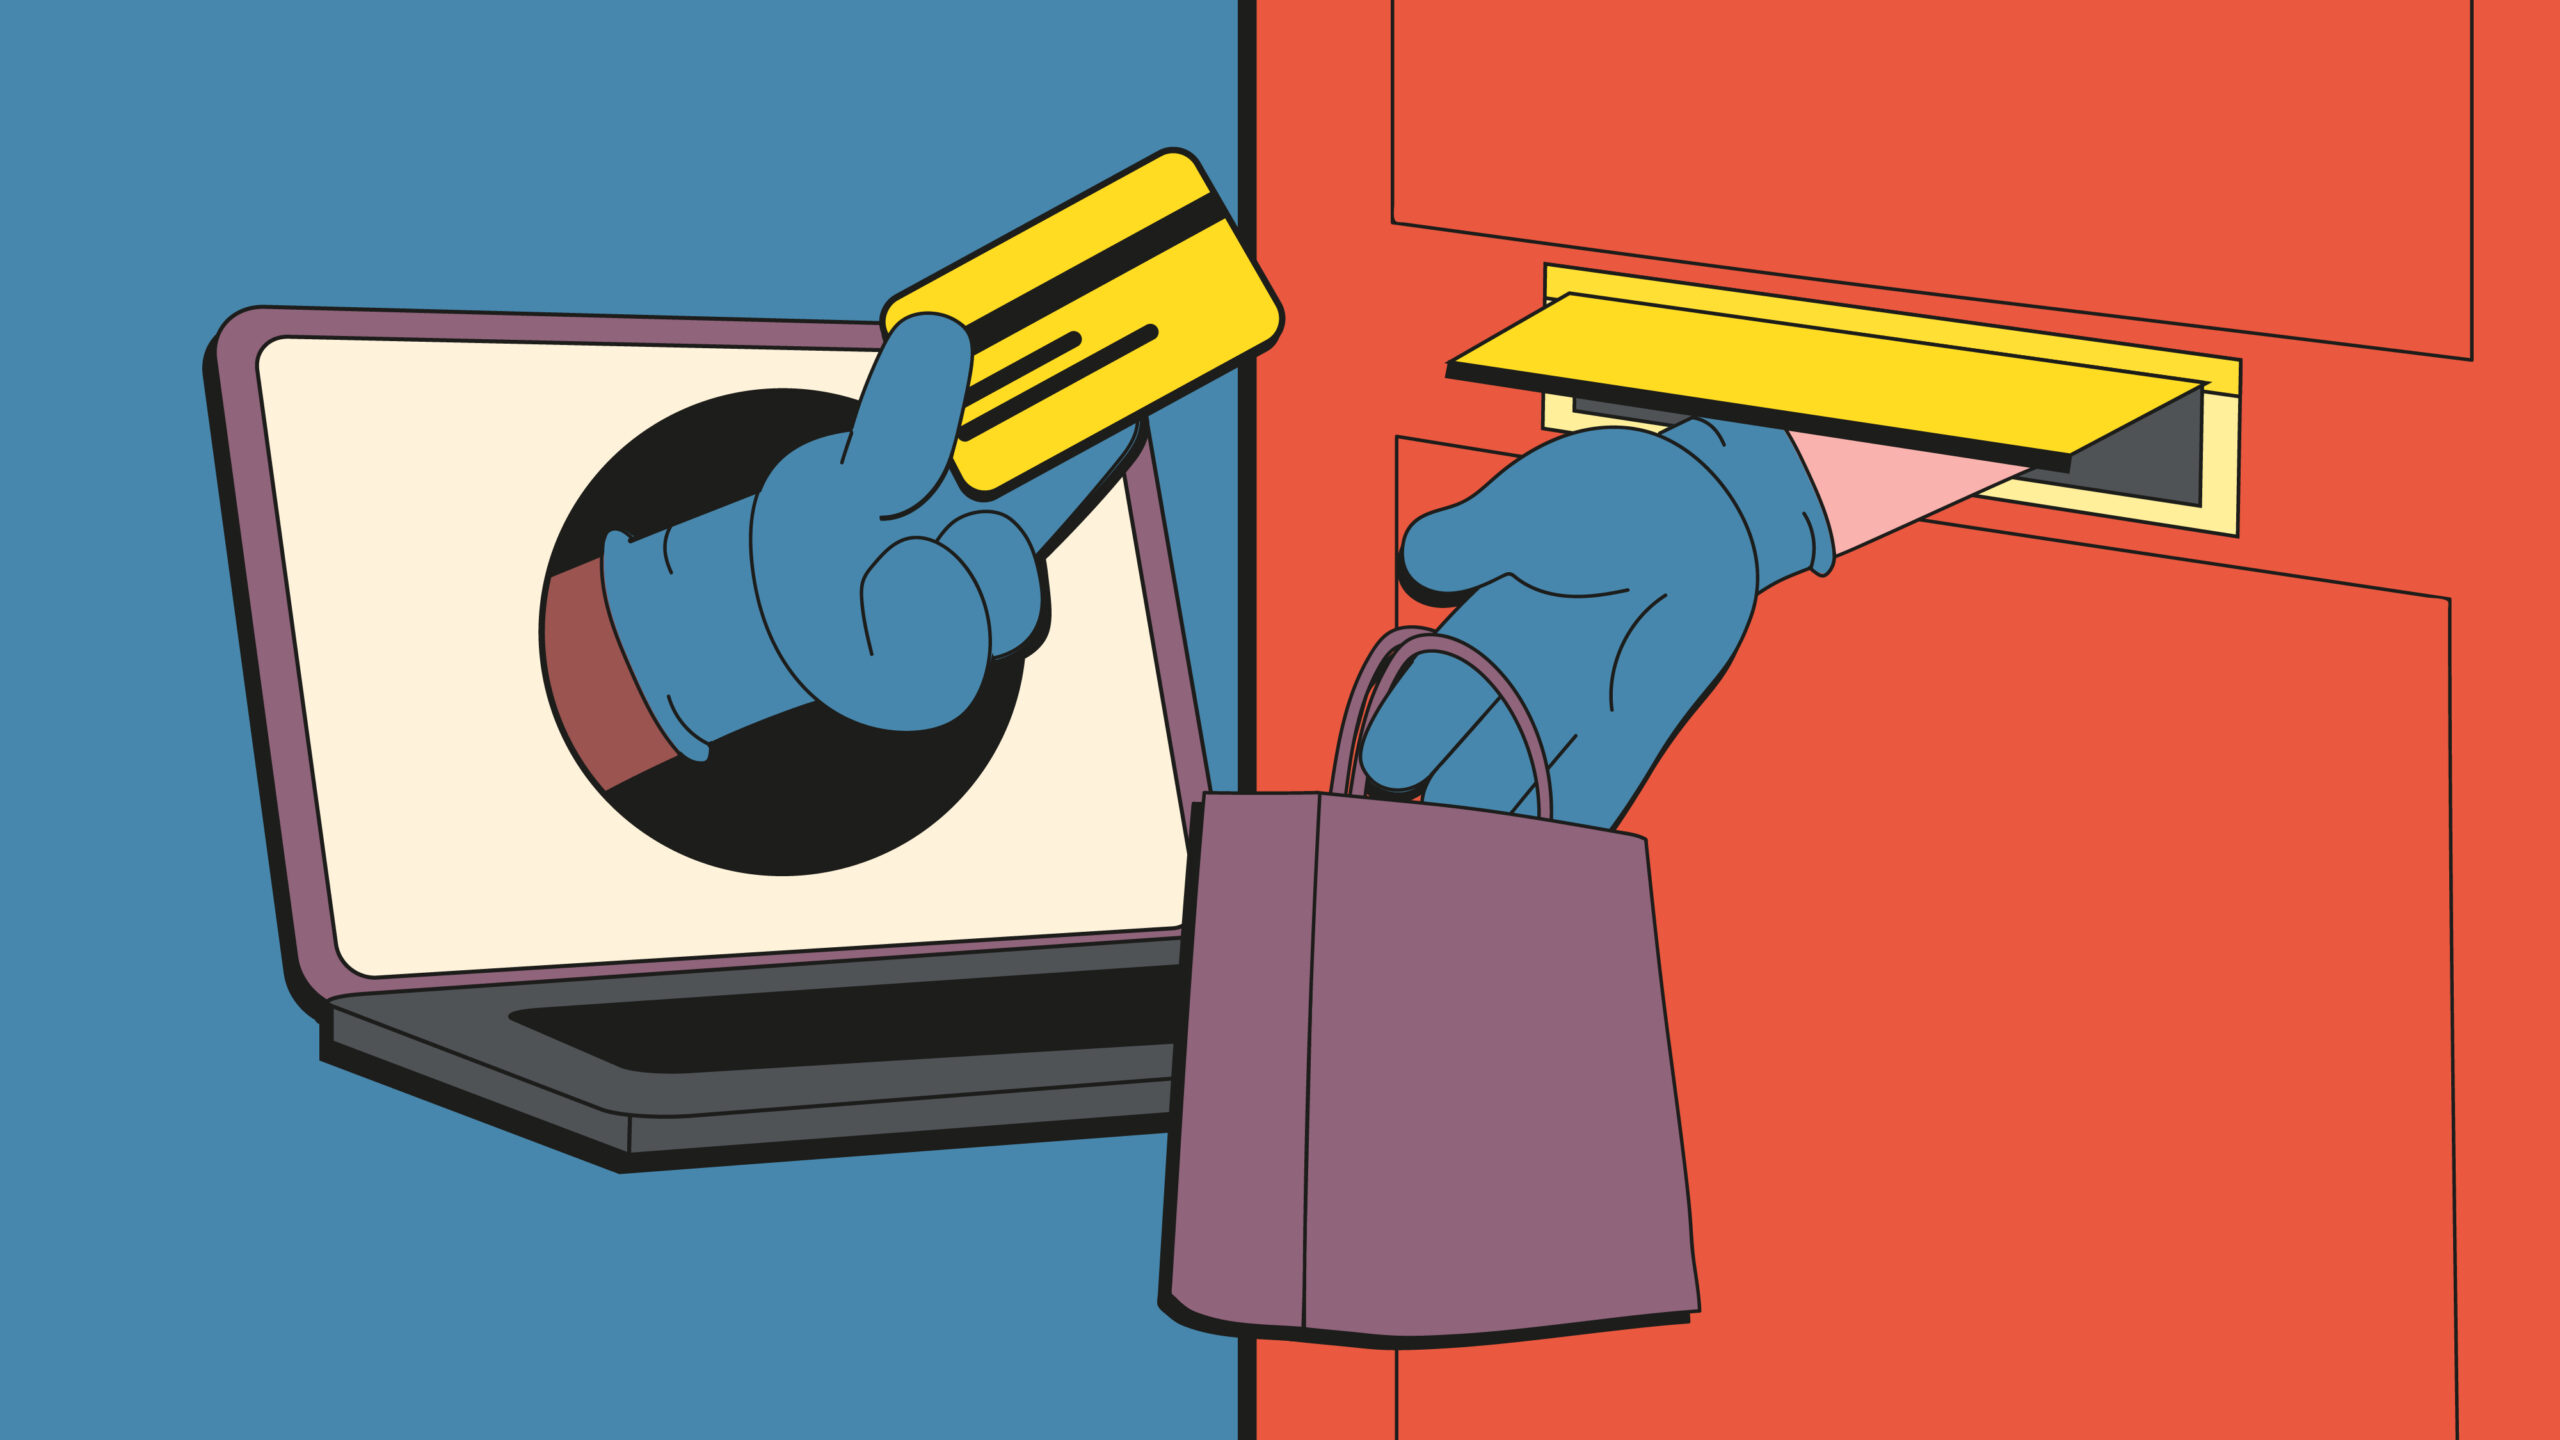 Illustration of hands in gloves exchanging items at a door.